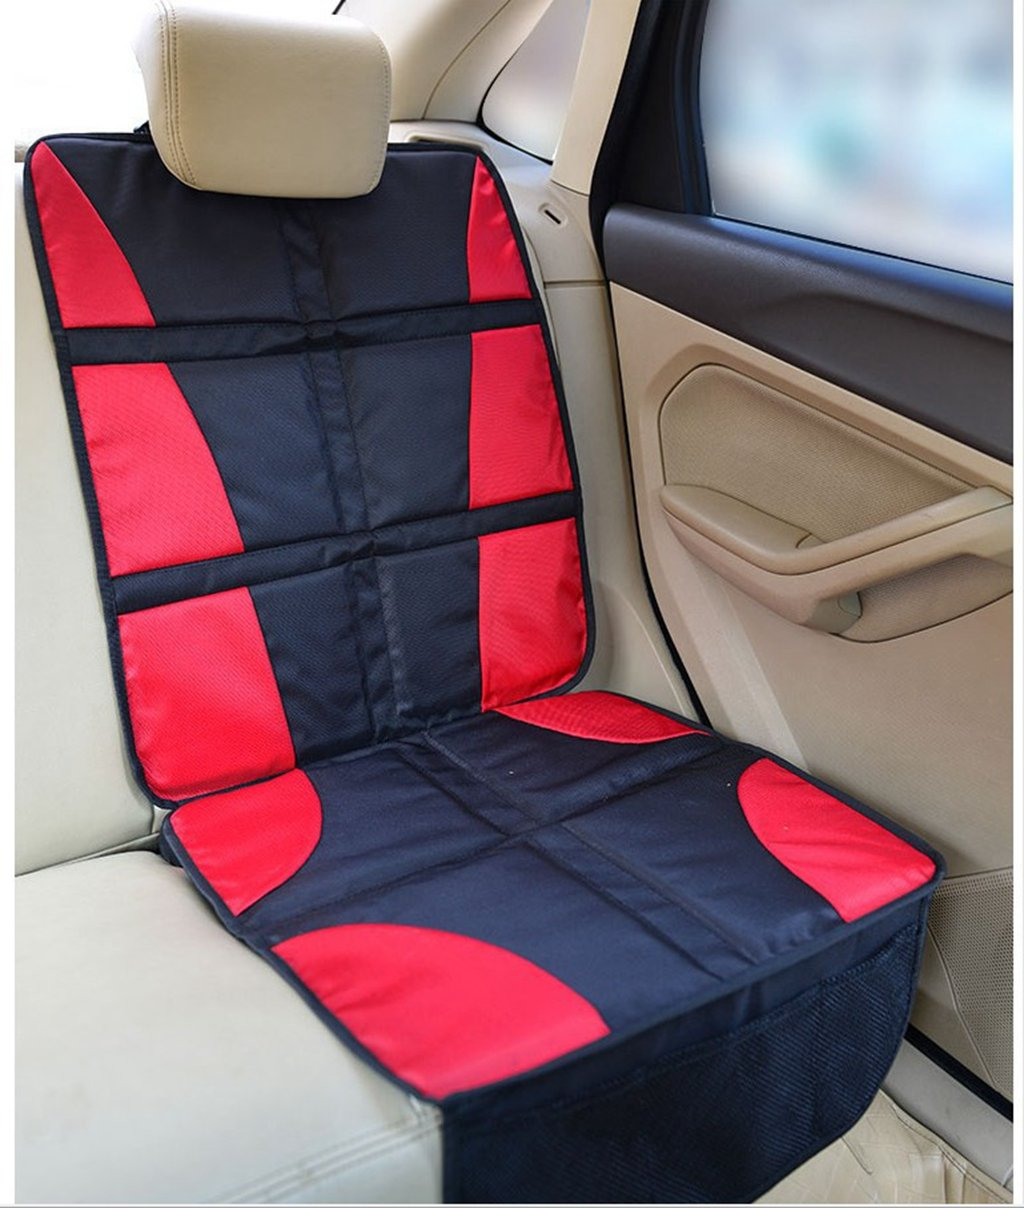 Car Seat Protector Child or Baby Auto Seat Cover Mat for under Carseat with Thickest Padding to Protect Leather & Fabric Upholstery,Red DoMyfit